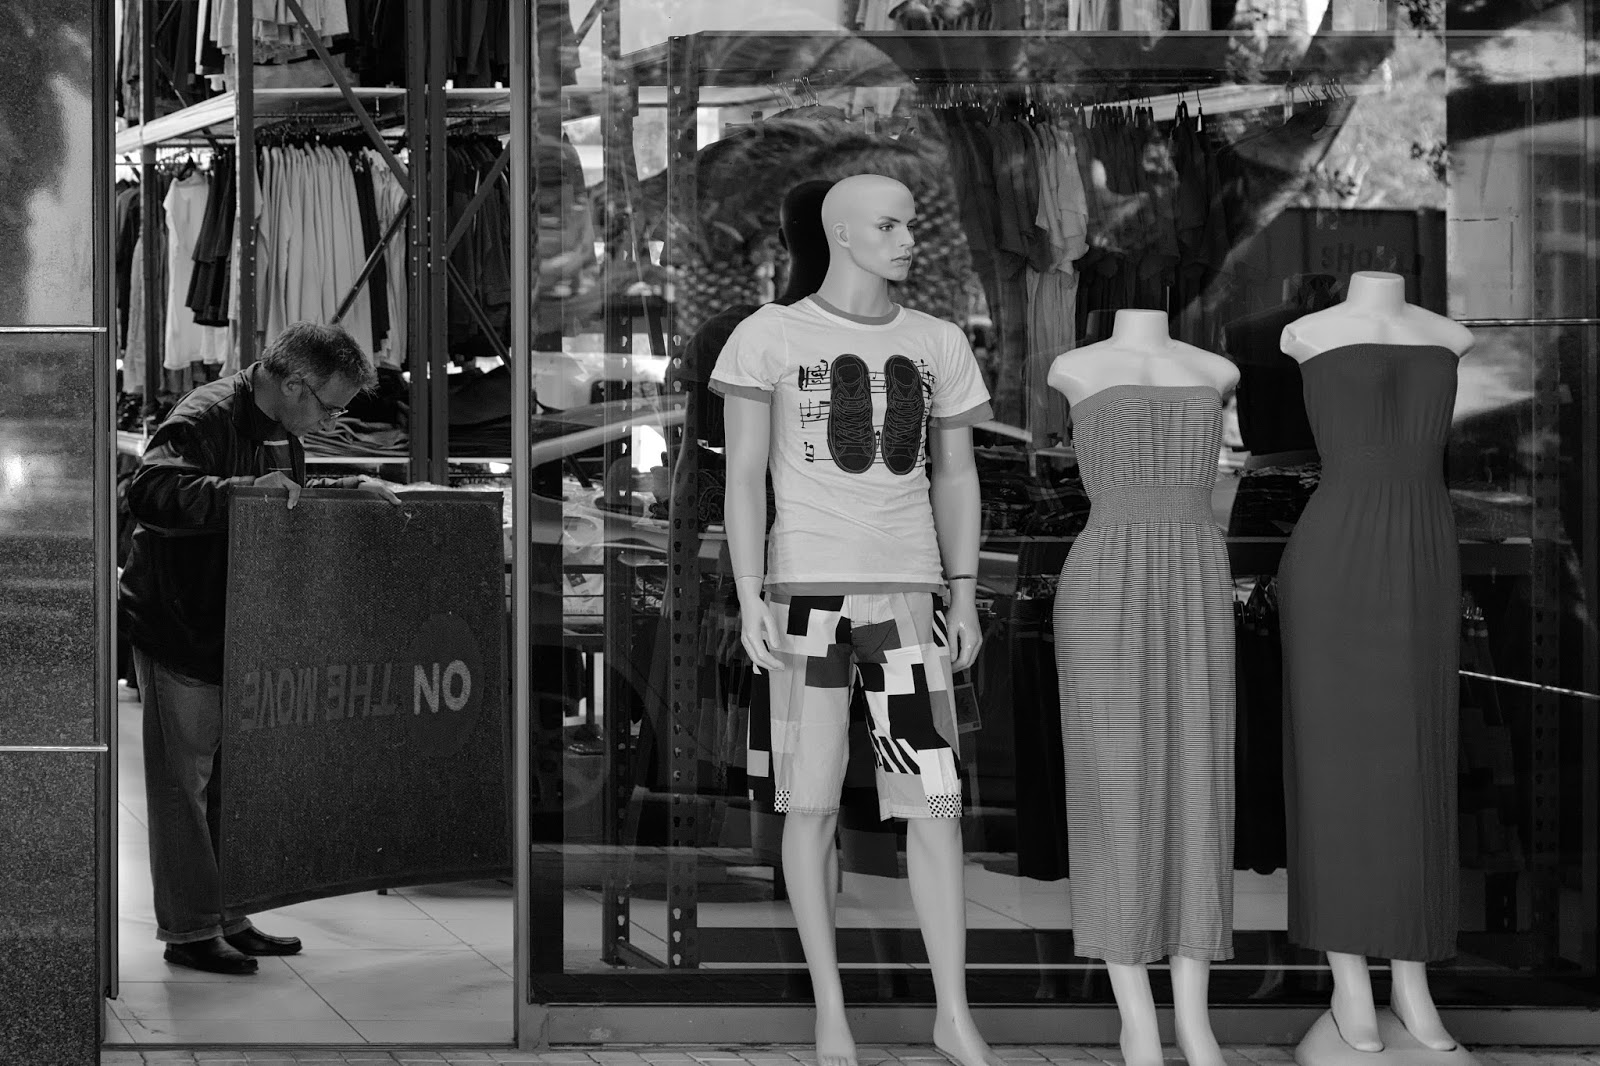 A shopkeeper and his mannequins